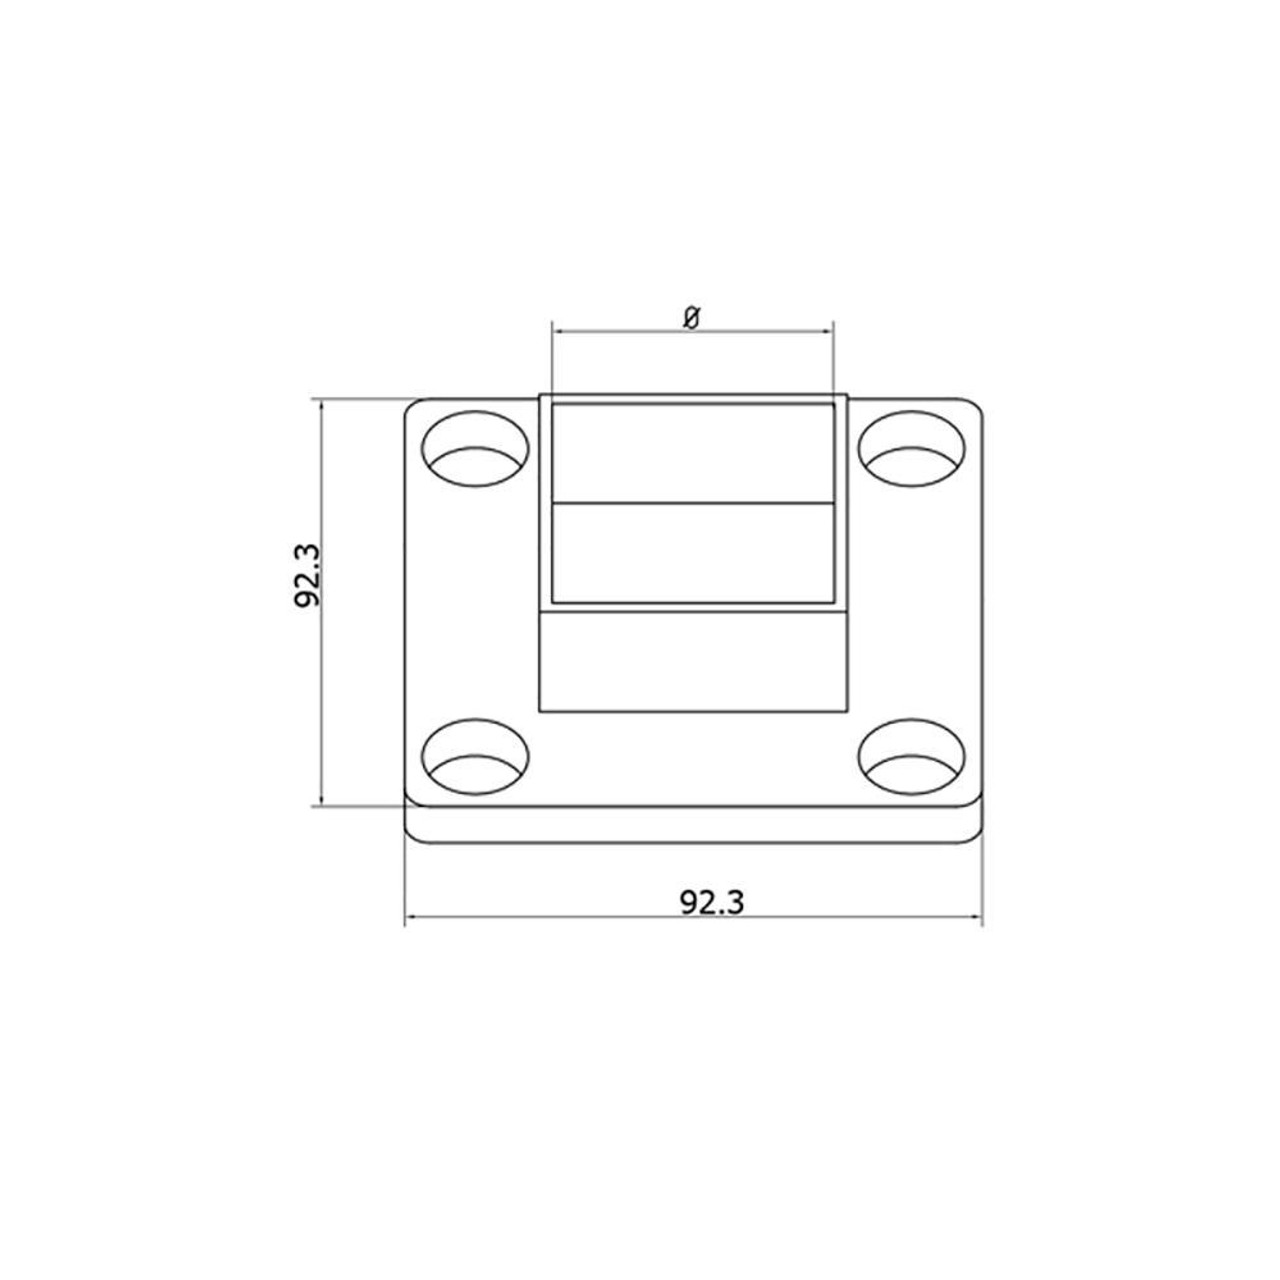 Wall Mount Flange for Square Rail – 40 x 40 x 2 mm (AX20.008.150.A.SP) CADD